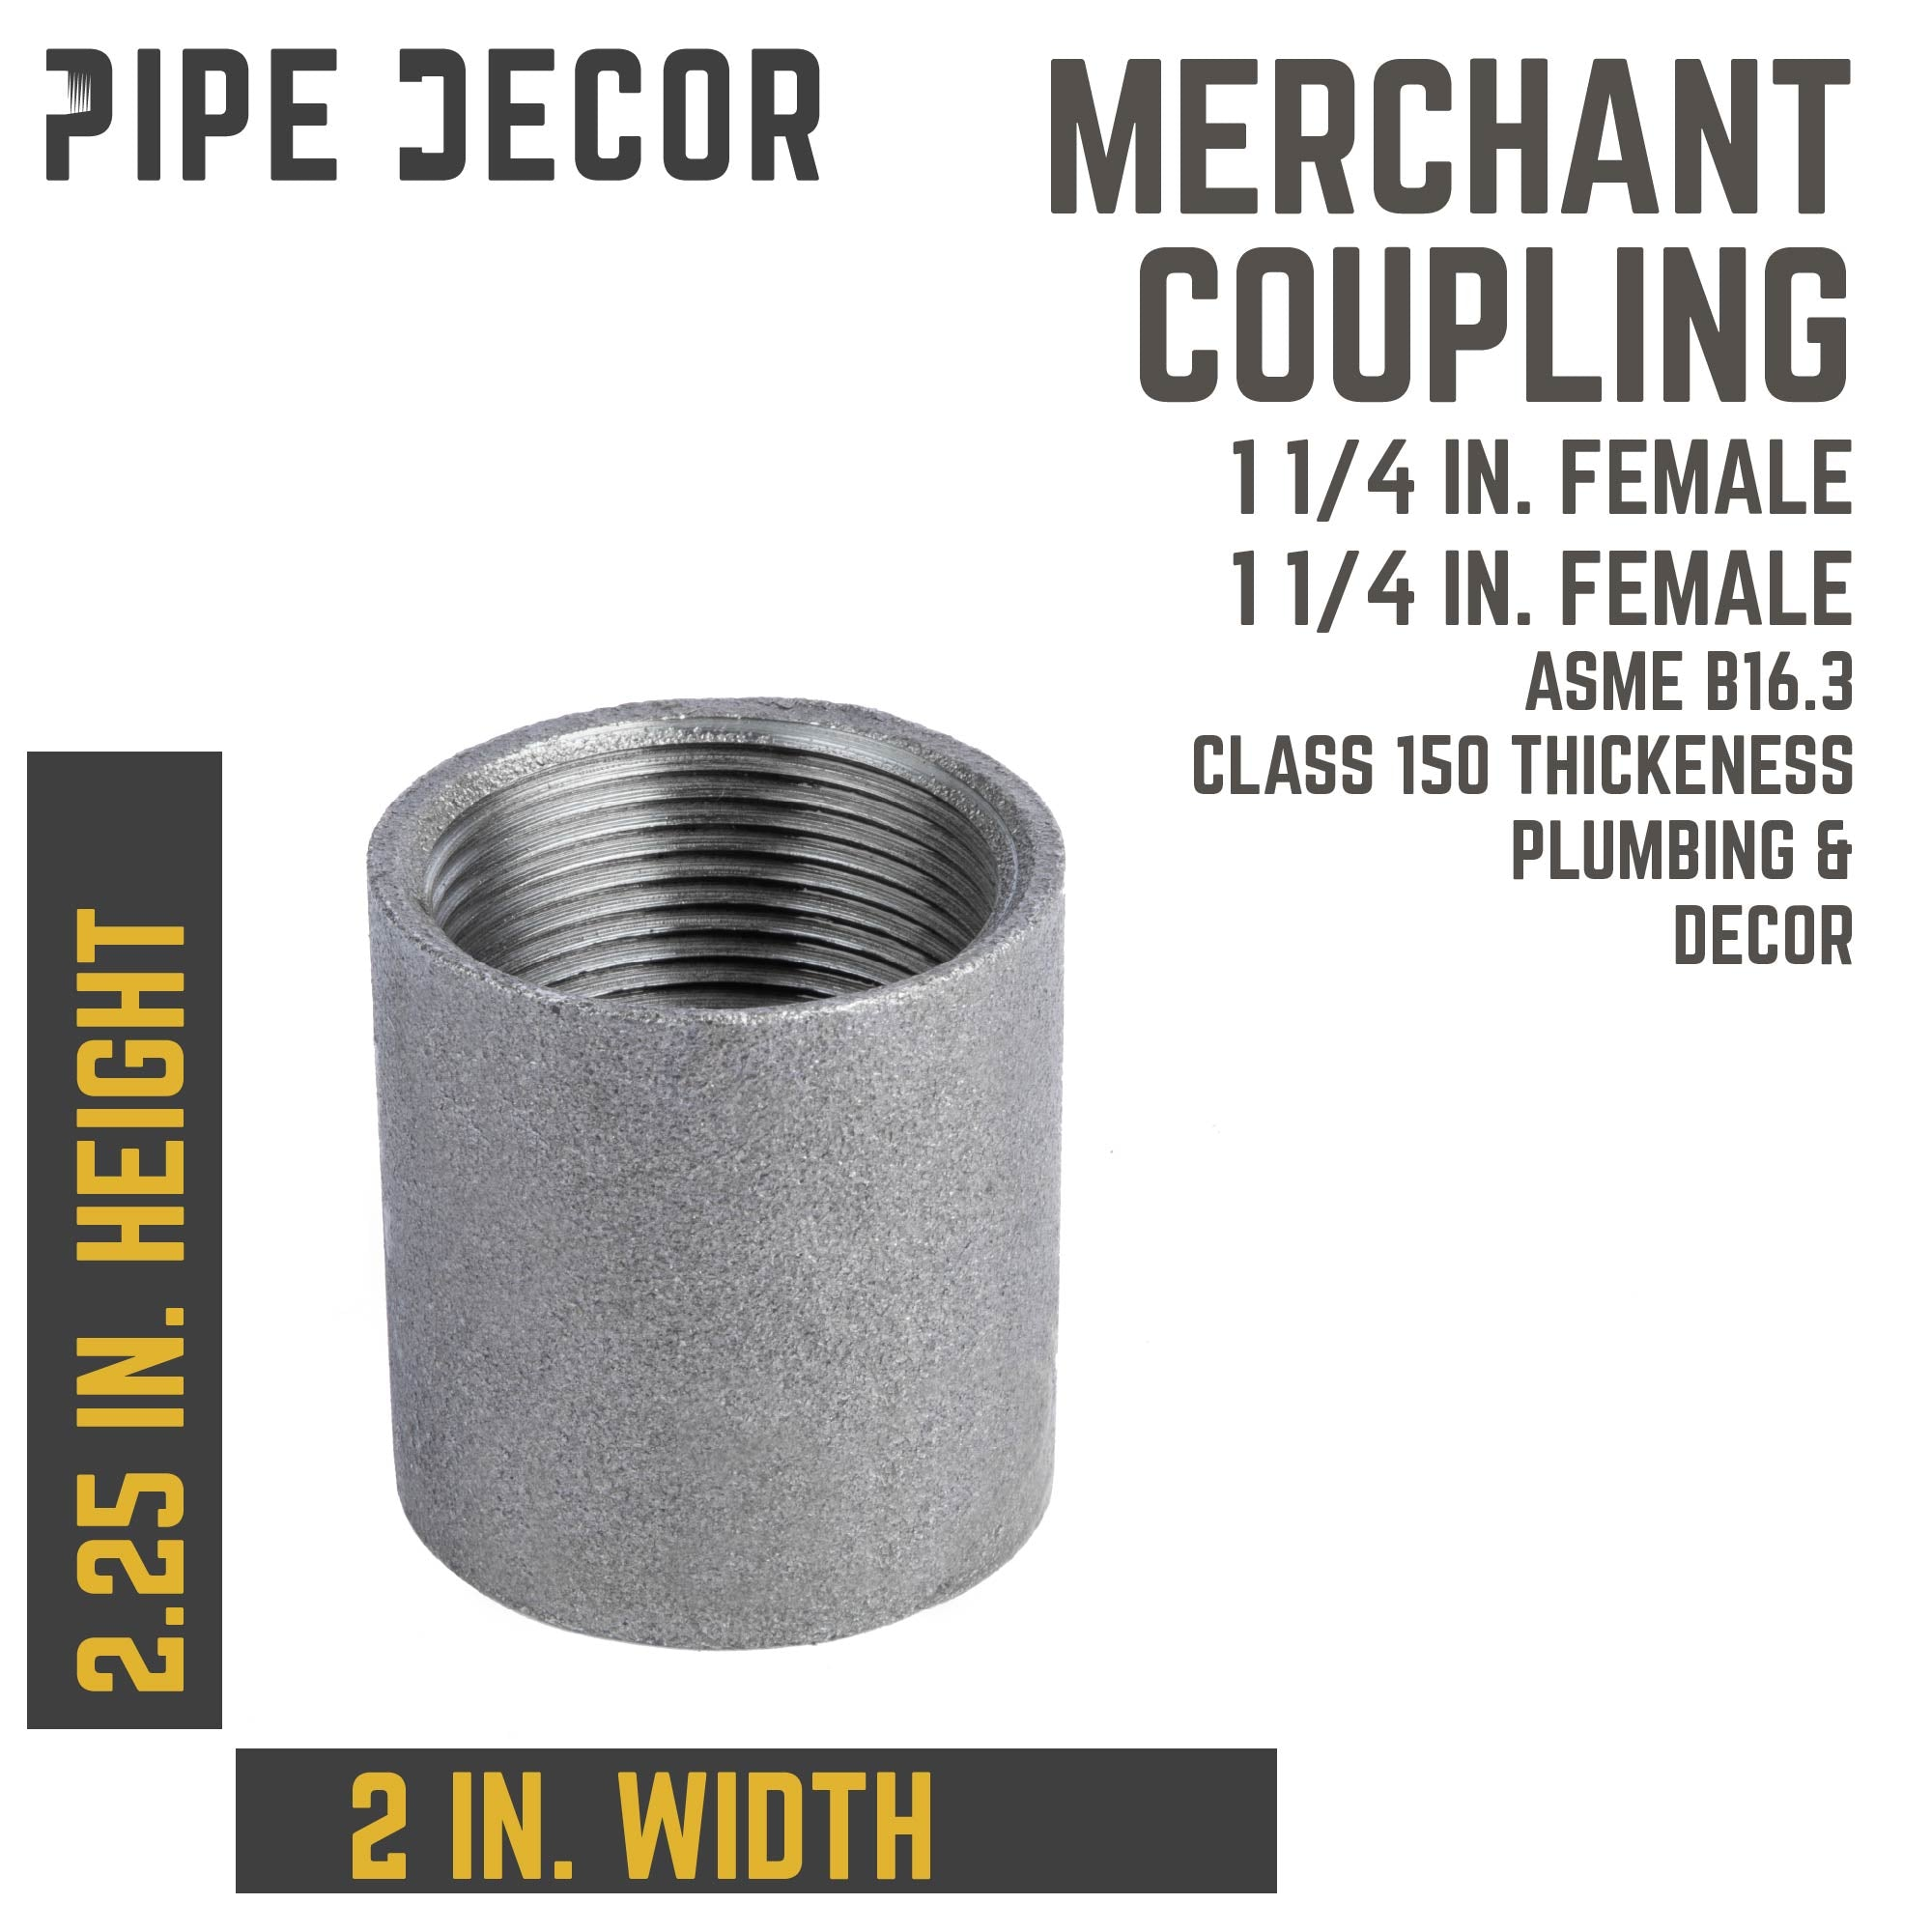 1 1/4 in. Black merchant coupling